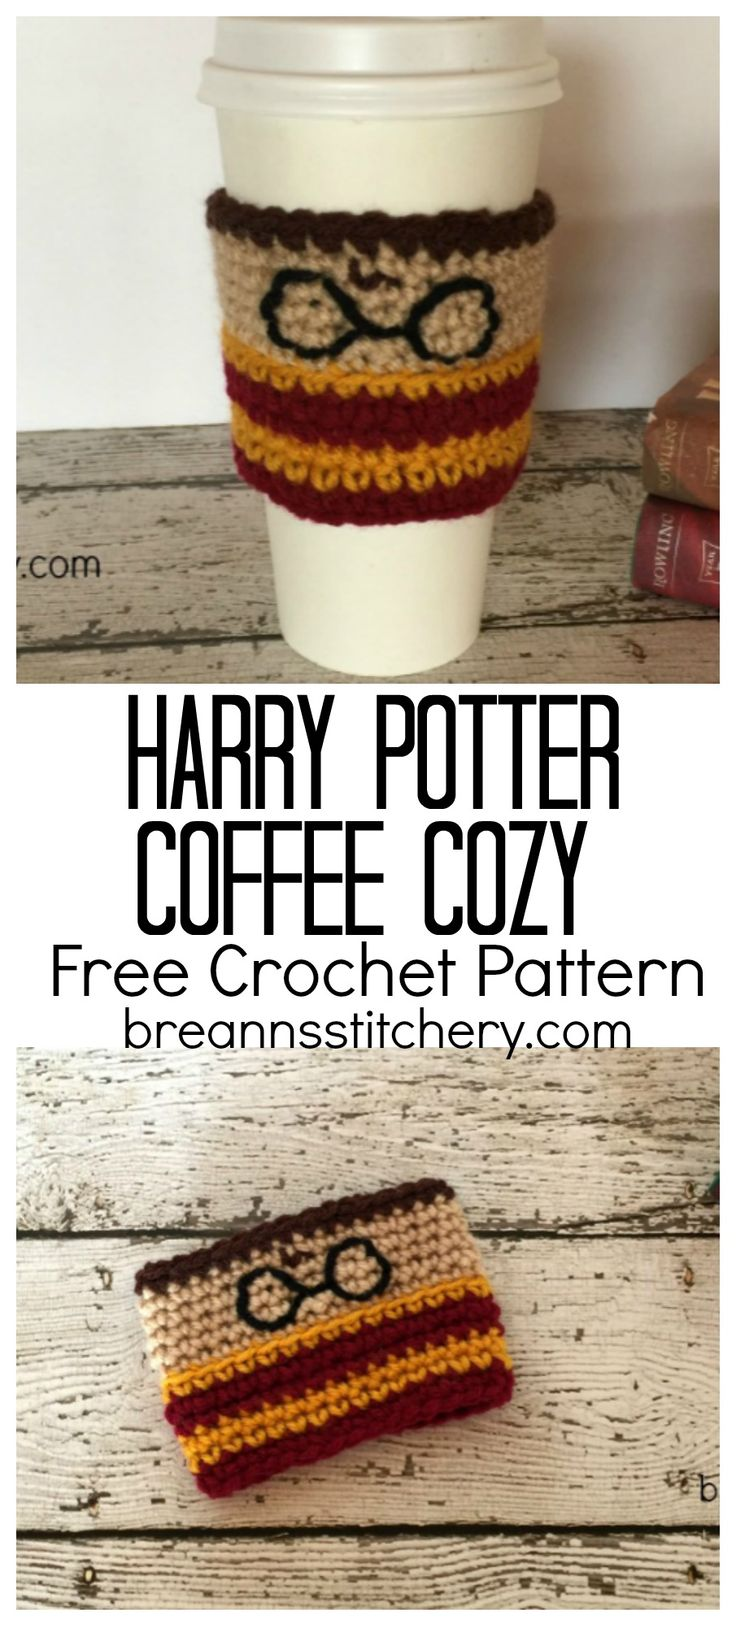 Are you a Harry Potter fan? Know someone who is? Then this pattern is for you! Make this Harry Potter cup cozy for the HP fan in your life. This pattern is available as an inexpensive, clearly formatted, PDF instant download HERE in my Etsy shop. PATTERN Materials: I used Red Heart Super Saver in Gold, Ranch Red, Brown, Buff, and Black Hook size 4.5 mm (G) Yarn needle Scissors Level: Easy to moderate Stitches to know: Sl st— slip stitch Ch – chain Sc – single crochet Sc blo – single crochet…